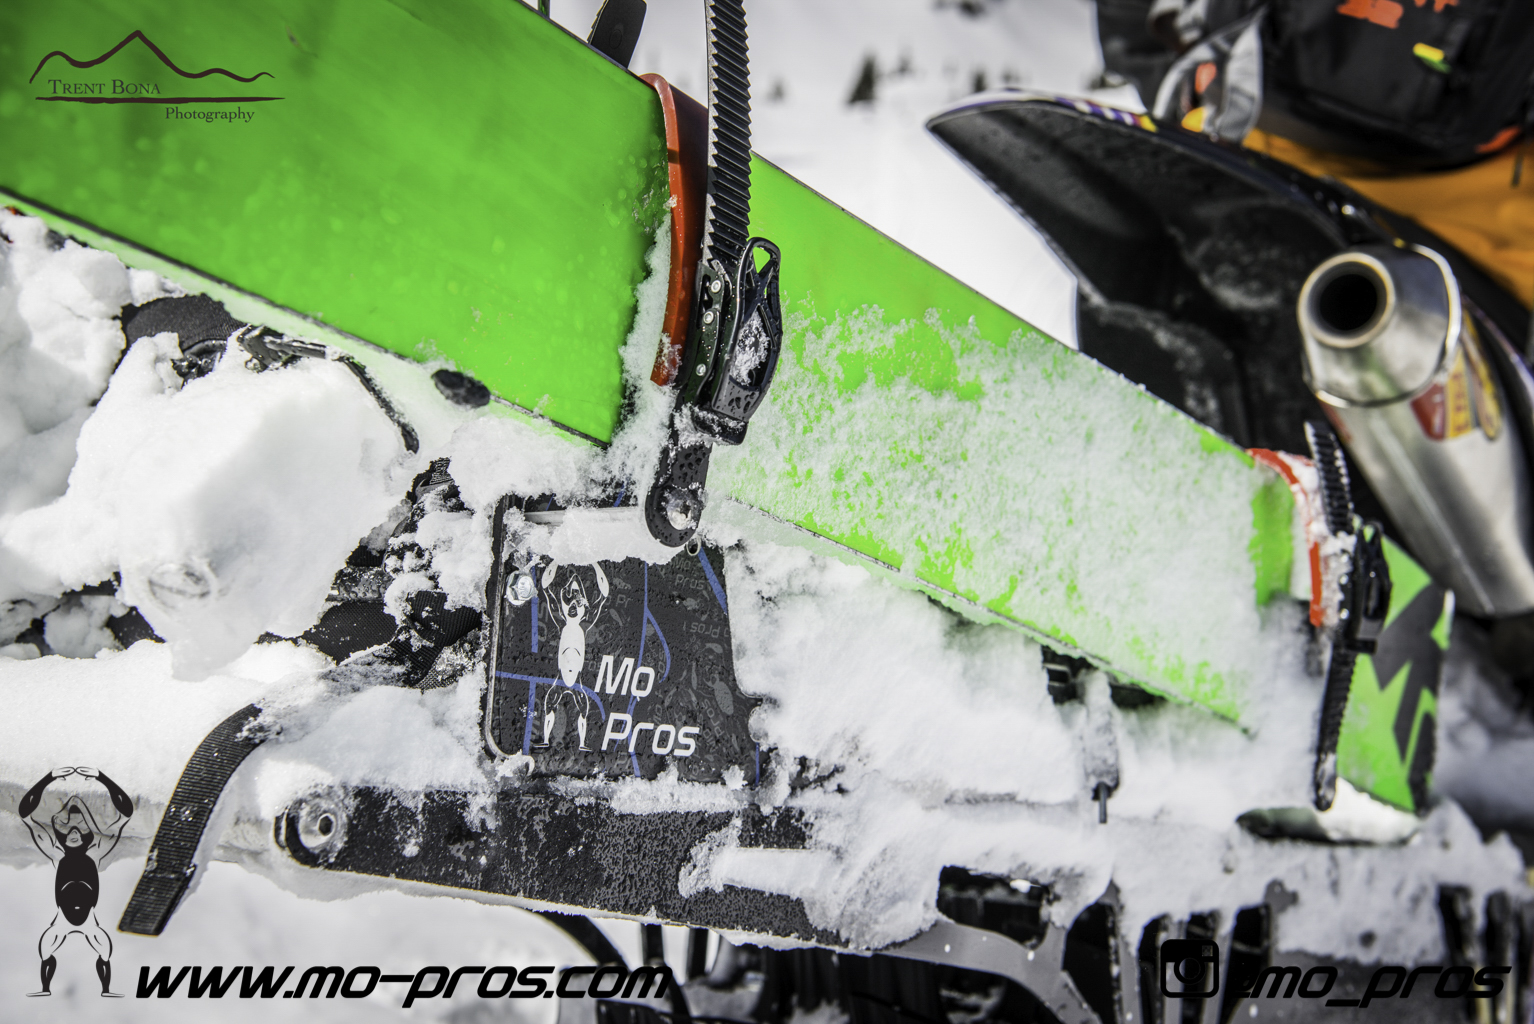 29_Snowbike_Timbersled Rack_Tsaina Rack_CFR rack_Cheetah Factory Racing_Snowboard rack_snowboard_snowmobile bag_Snowmobile_timbersled bag_gas Rack_Gear_Gun Rack_LinQ Snowboard Ski_Ski_Snowboarding_Ti.jpg